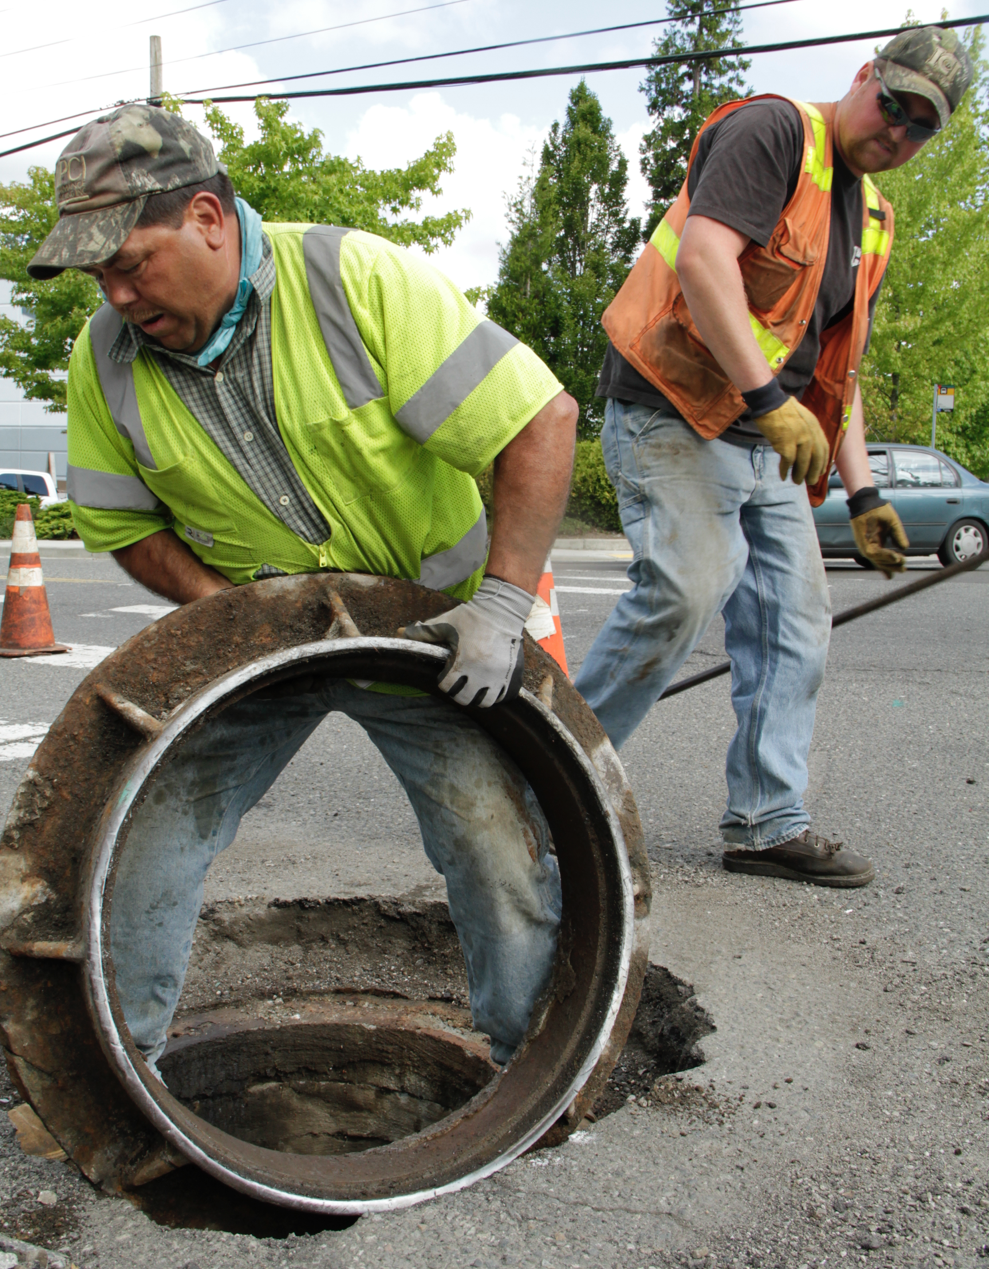 Watson Asphalt operator Chris Schroeder watches as laborer T Pelayo rolls away a sewer drain cover Monday from 120th Avenue Northeast as part of the lowering iron process, in which he and fellow crew members prepare the arterial for grinding later this week. 120th Avenue Northeast is one of six arterials Kirkland is resurfacing this summer. The City of Kirkland is also resurfacing sections of Northeast 112th, 116th and 124th streets, 132nd Avenue Northeast, and Lake Washington Boulevard for a total of 11.8 lane miles.